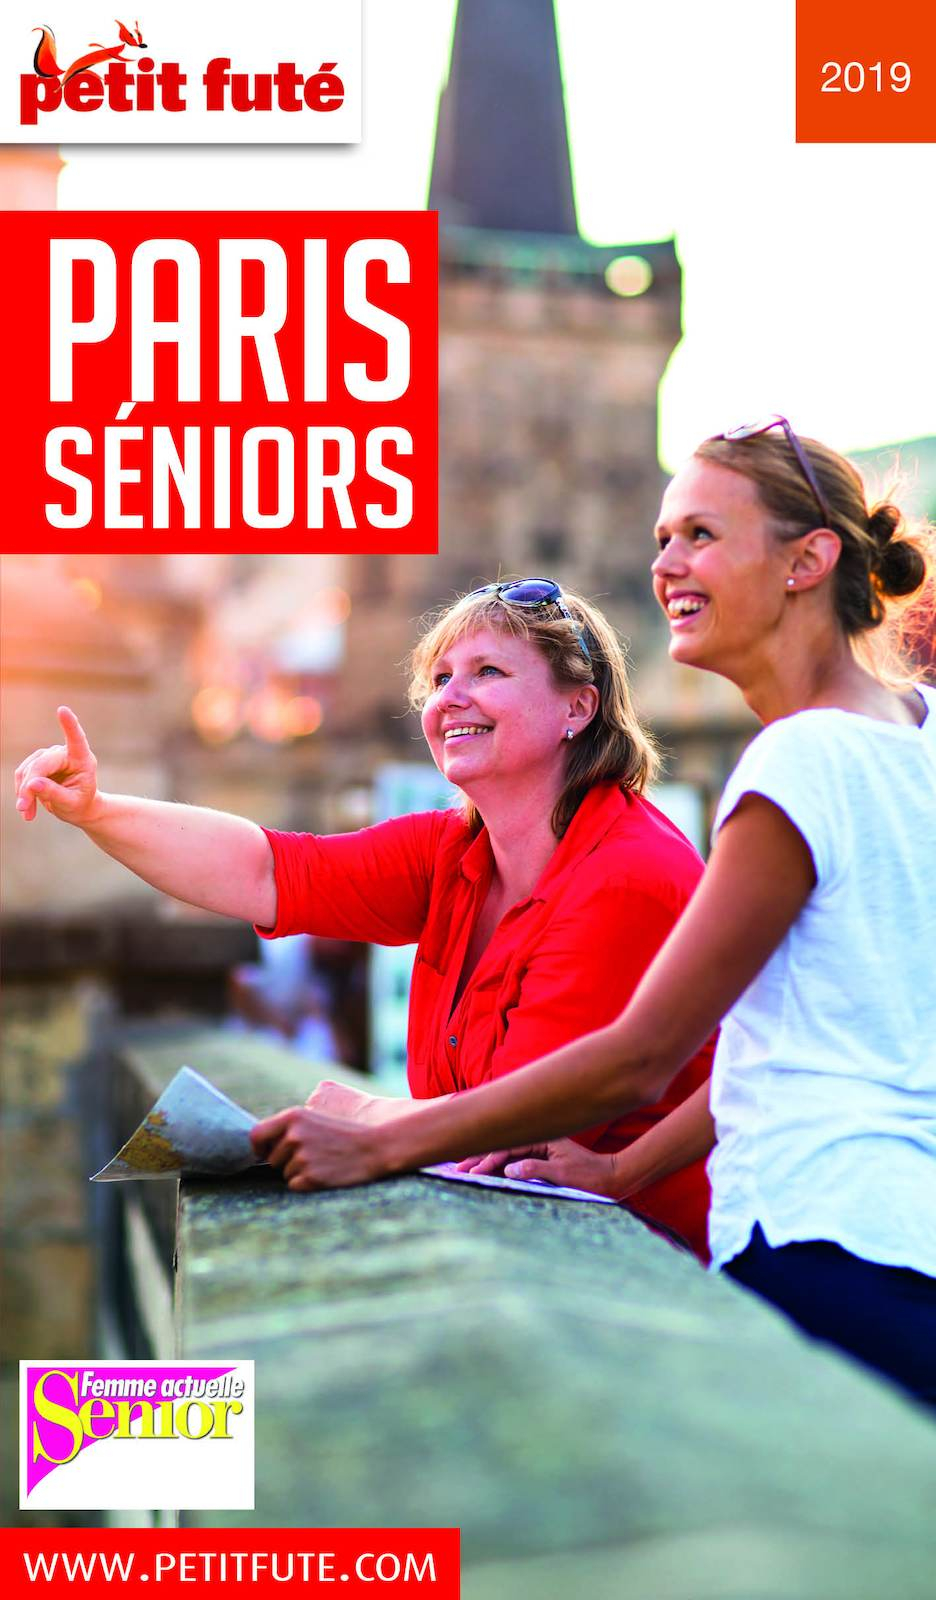 PARIS SENIORS 2019 Petit Futé